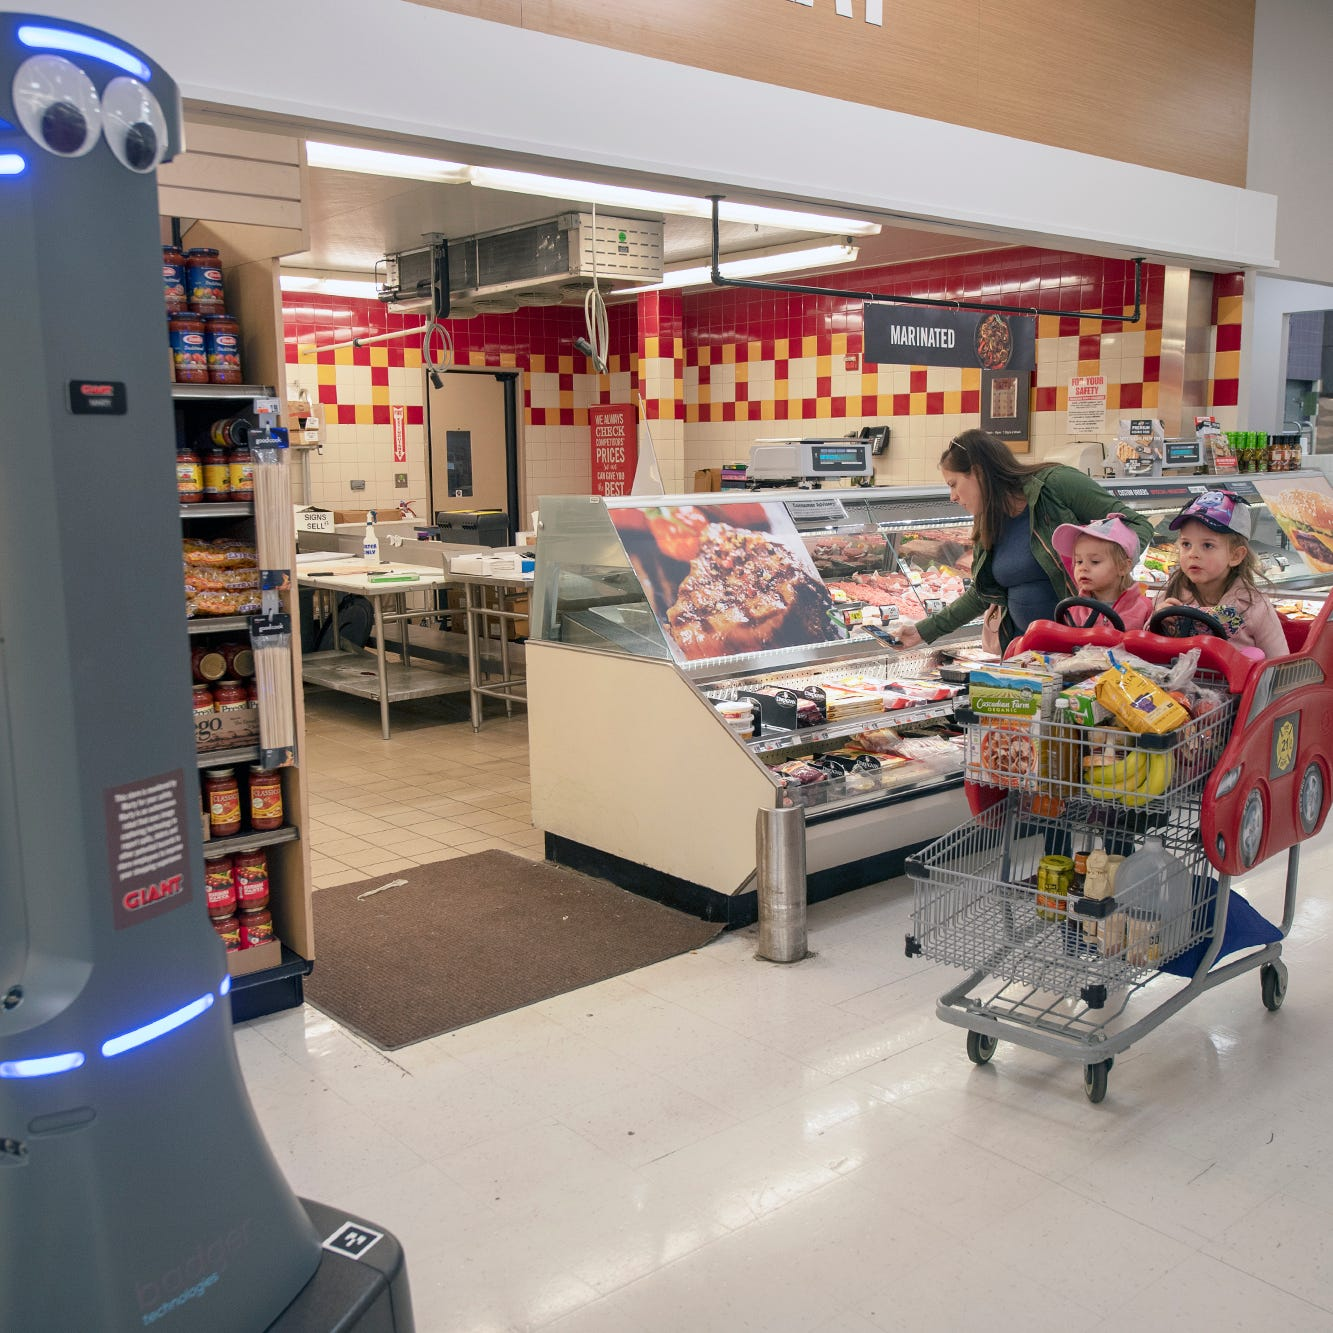 Robot workers in grocery stores? They're here, and we're still learning to live with them.